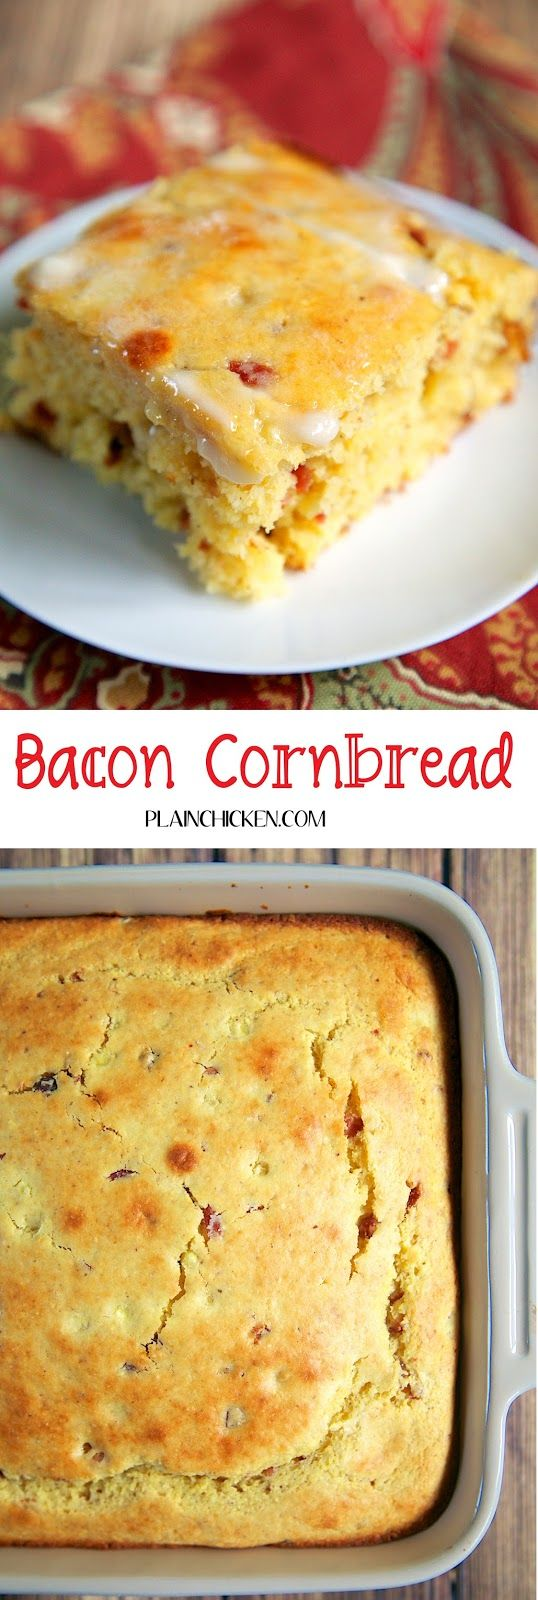 Bacon Cornbread Recipe - homemade sweet cornbread packed with fresh corn and bacon - recipe from The Biltmore in Asheville, NC. SO delicious! How could it not be with yummy bacon?!?! Ready in 30 minutes.